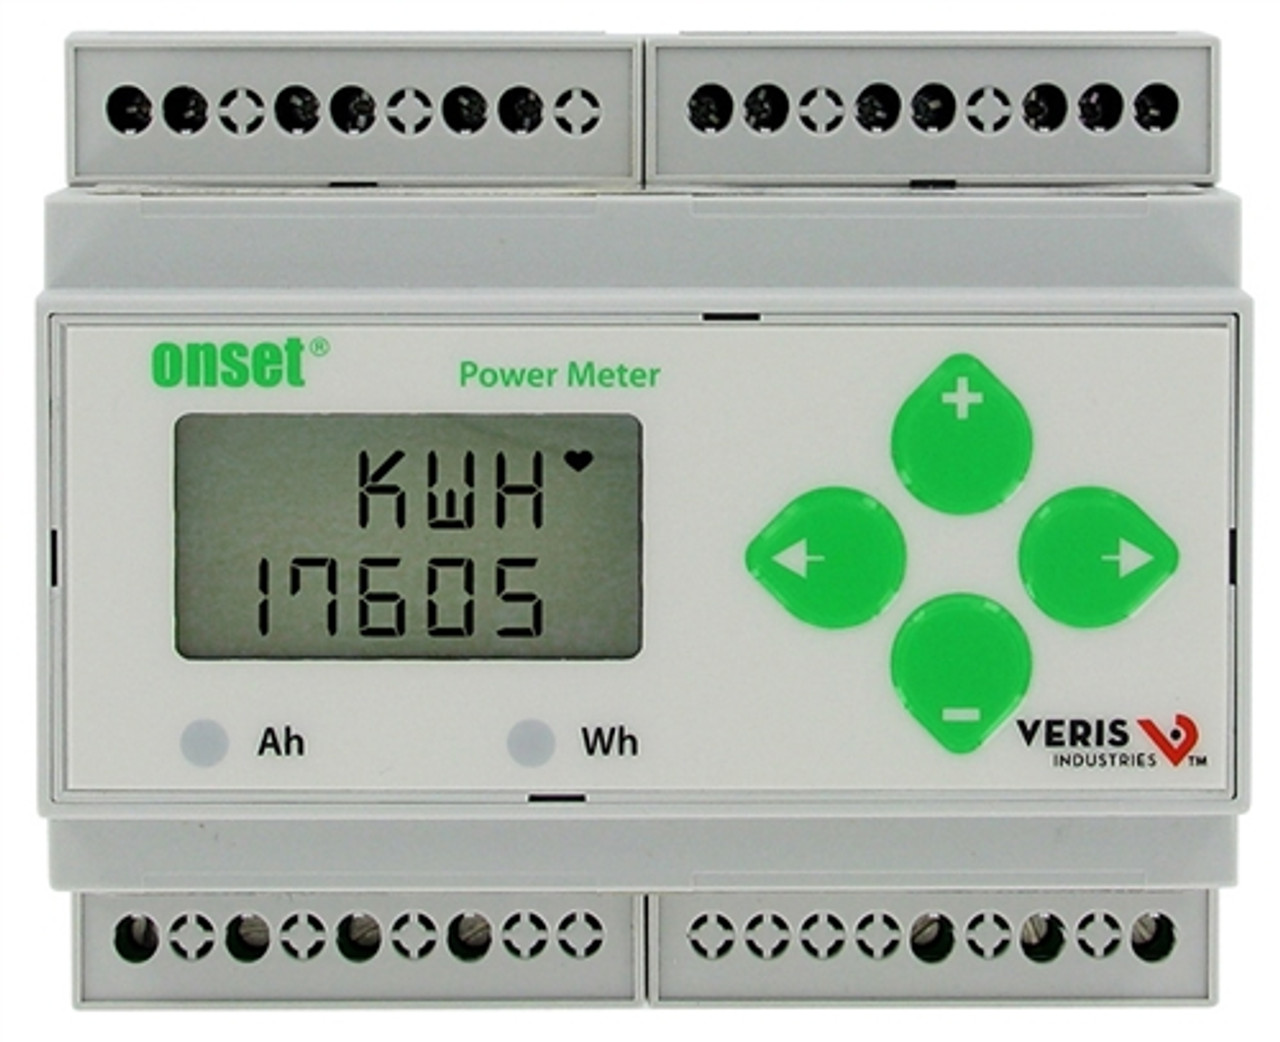 Onset Power Meter 600VAC 3 pulse output - T-VER-E50B2